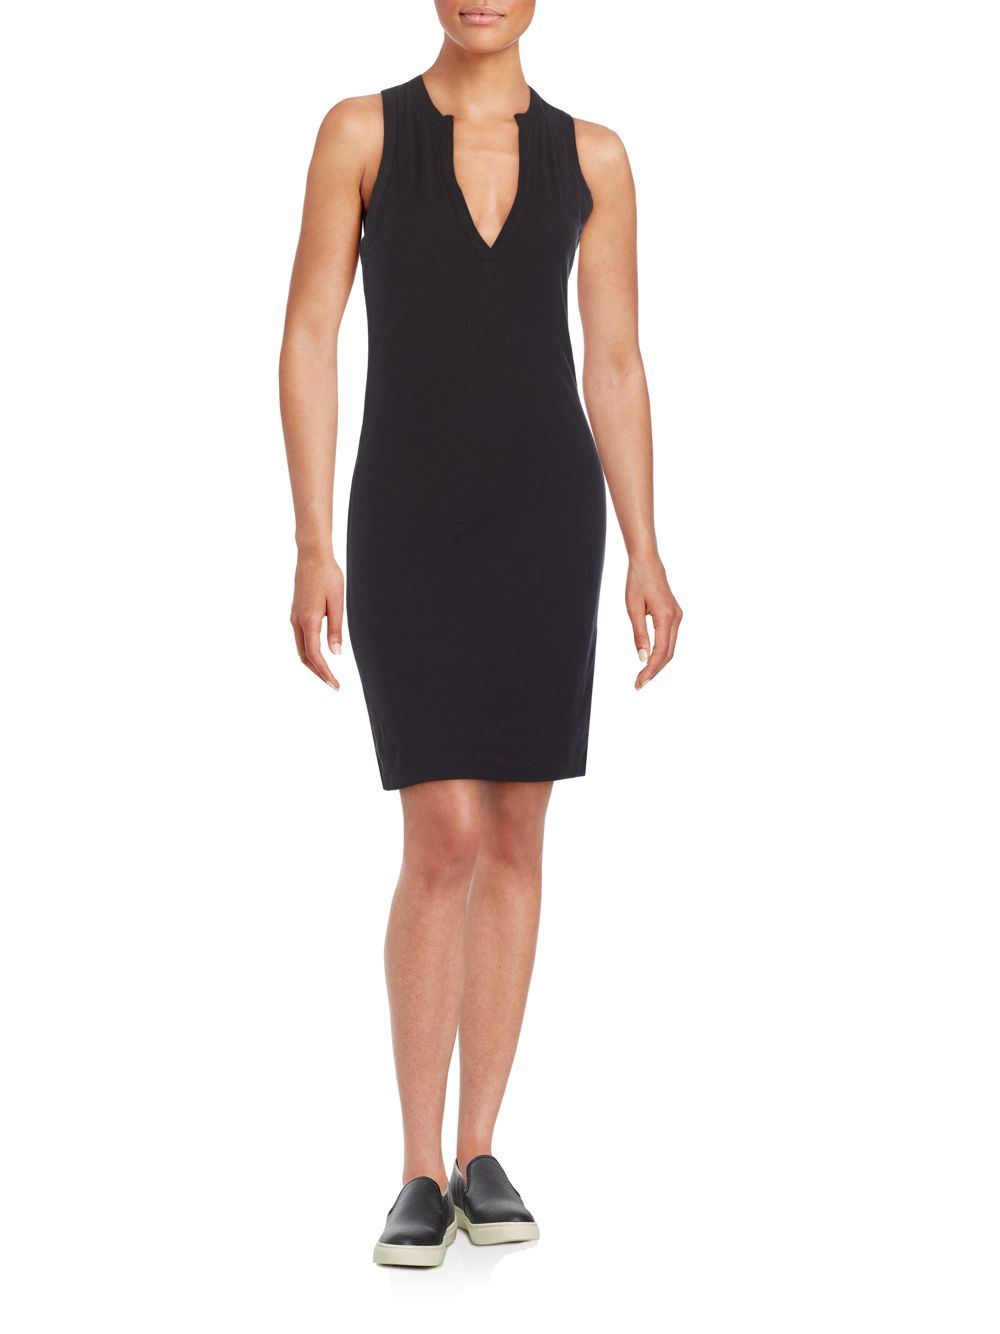 James perse henley tank dress in black lyst for James perse henley shirt